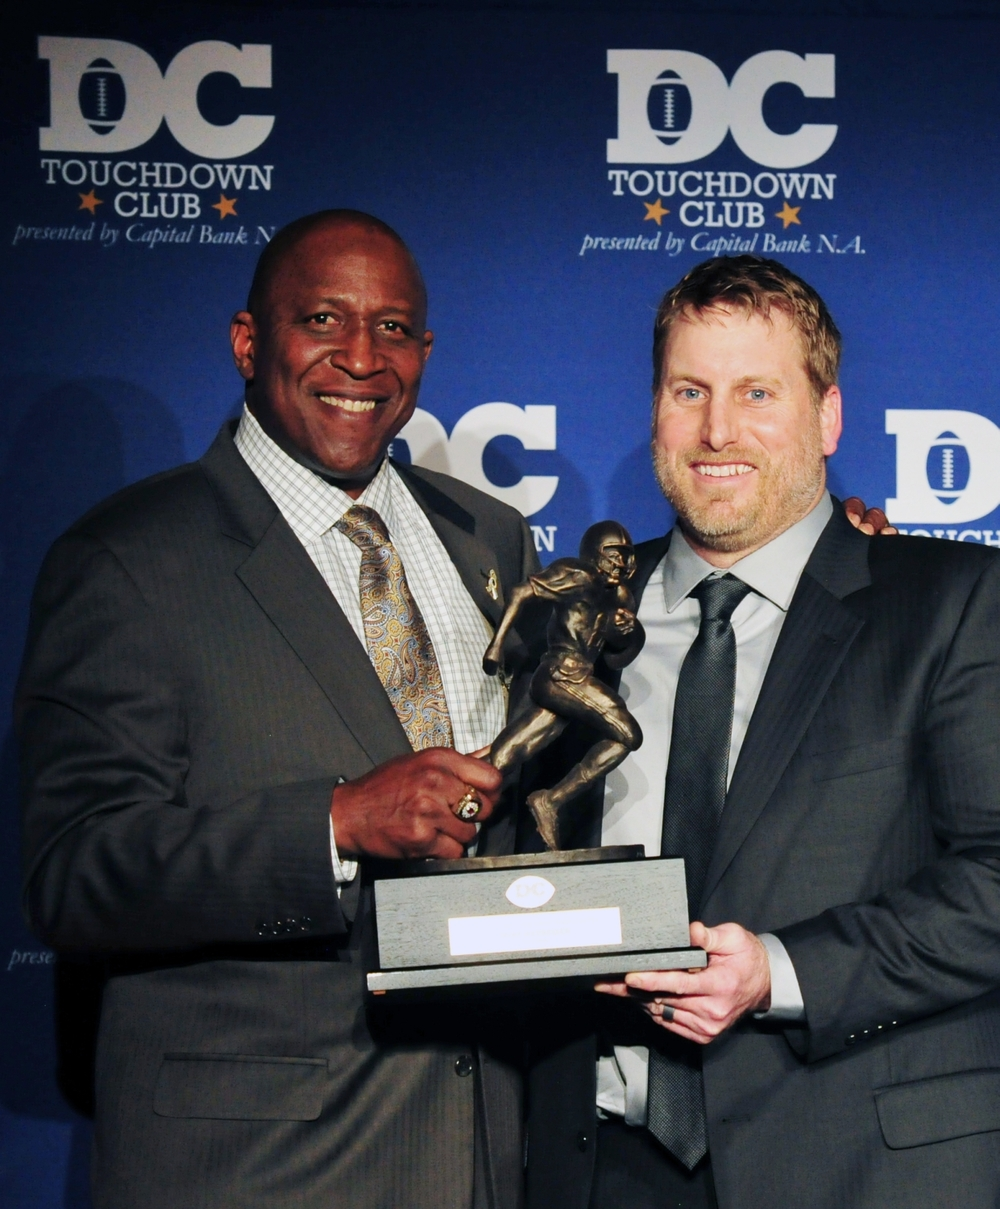 2015dctouchdownclubawards113.jpg